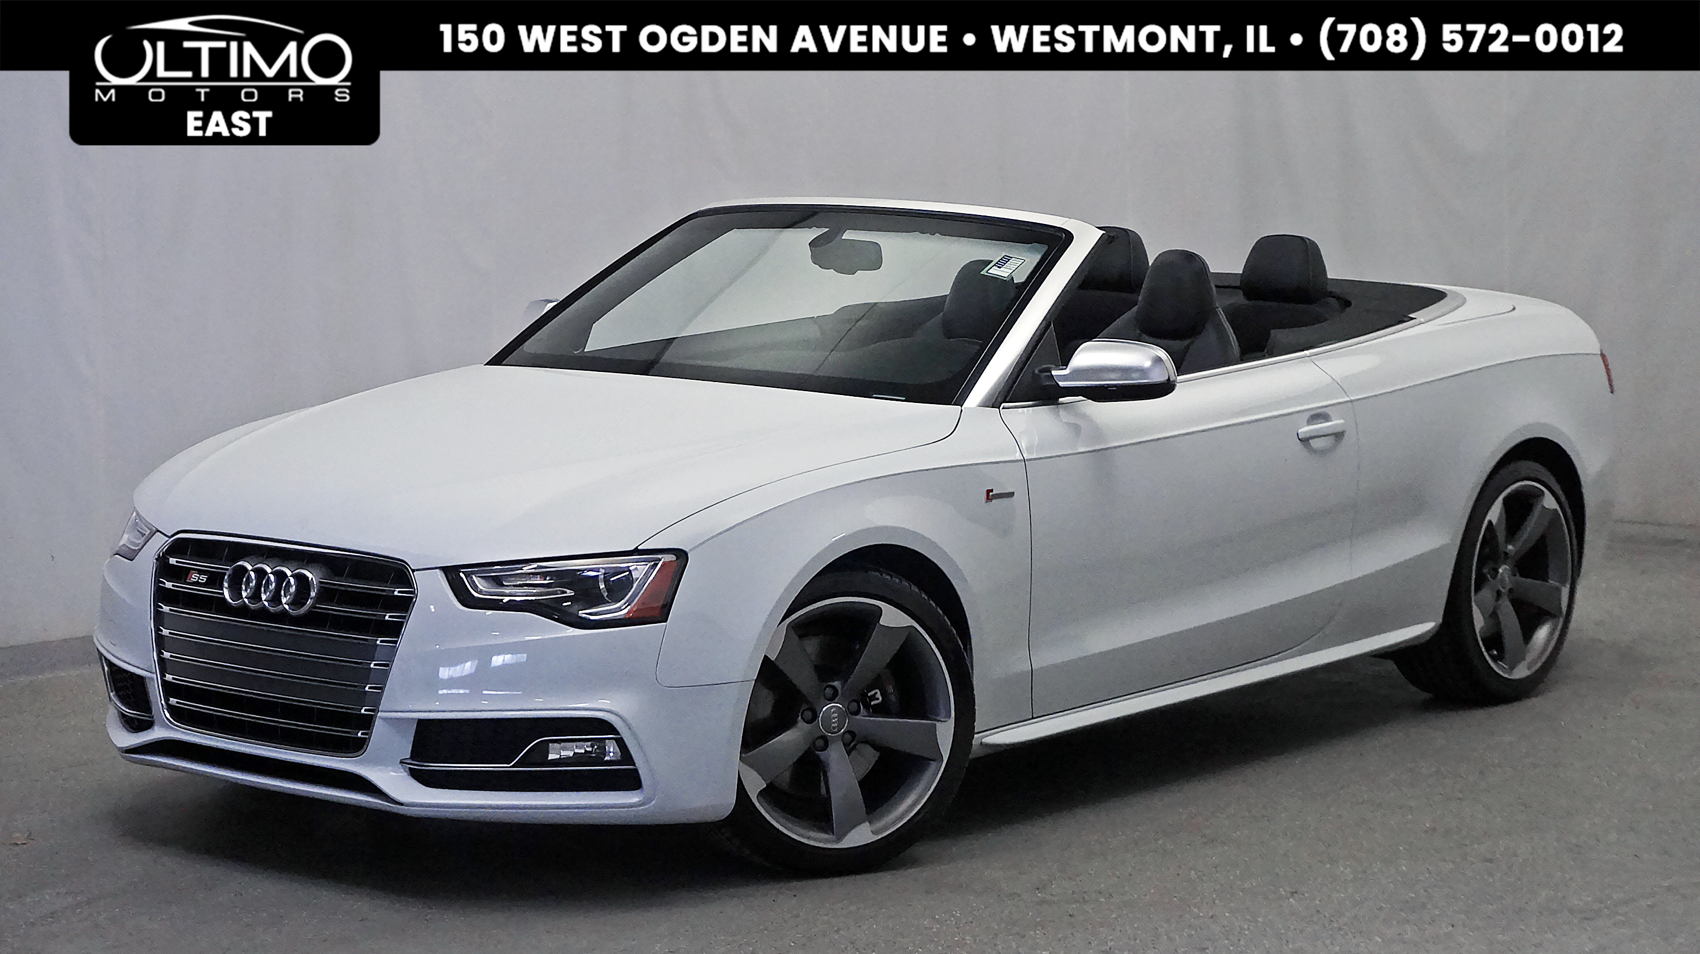 Pre-Owned 2014 Audi S5 Premium Plus Navigation+ Pkg, Bang & Olufsen Sound, 19-Wheels, Xenon Plus